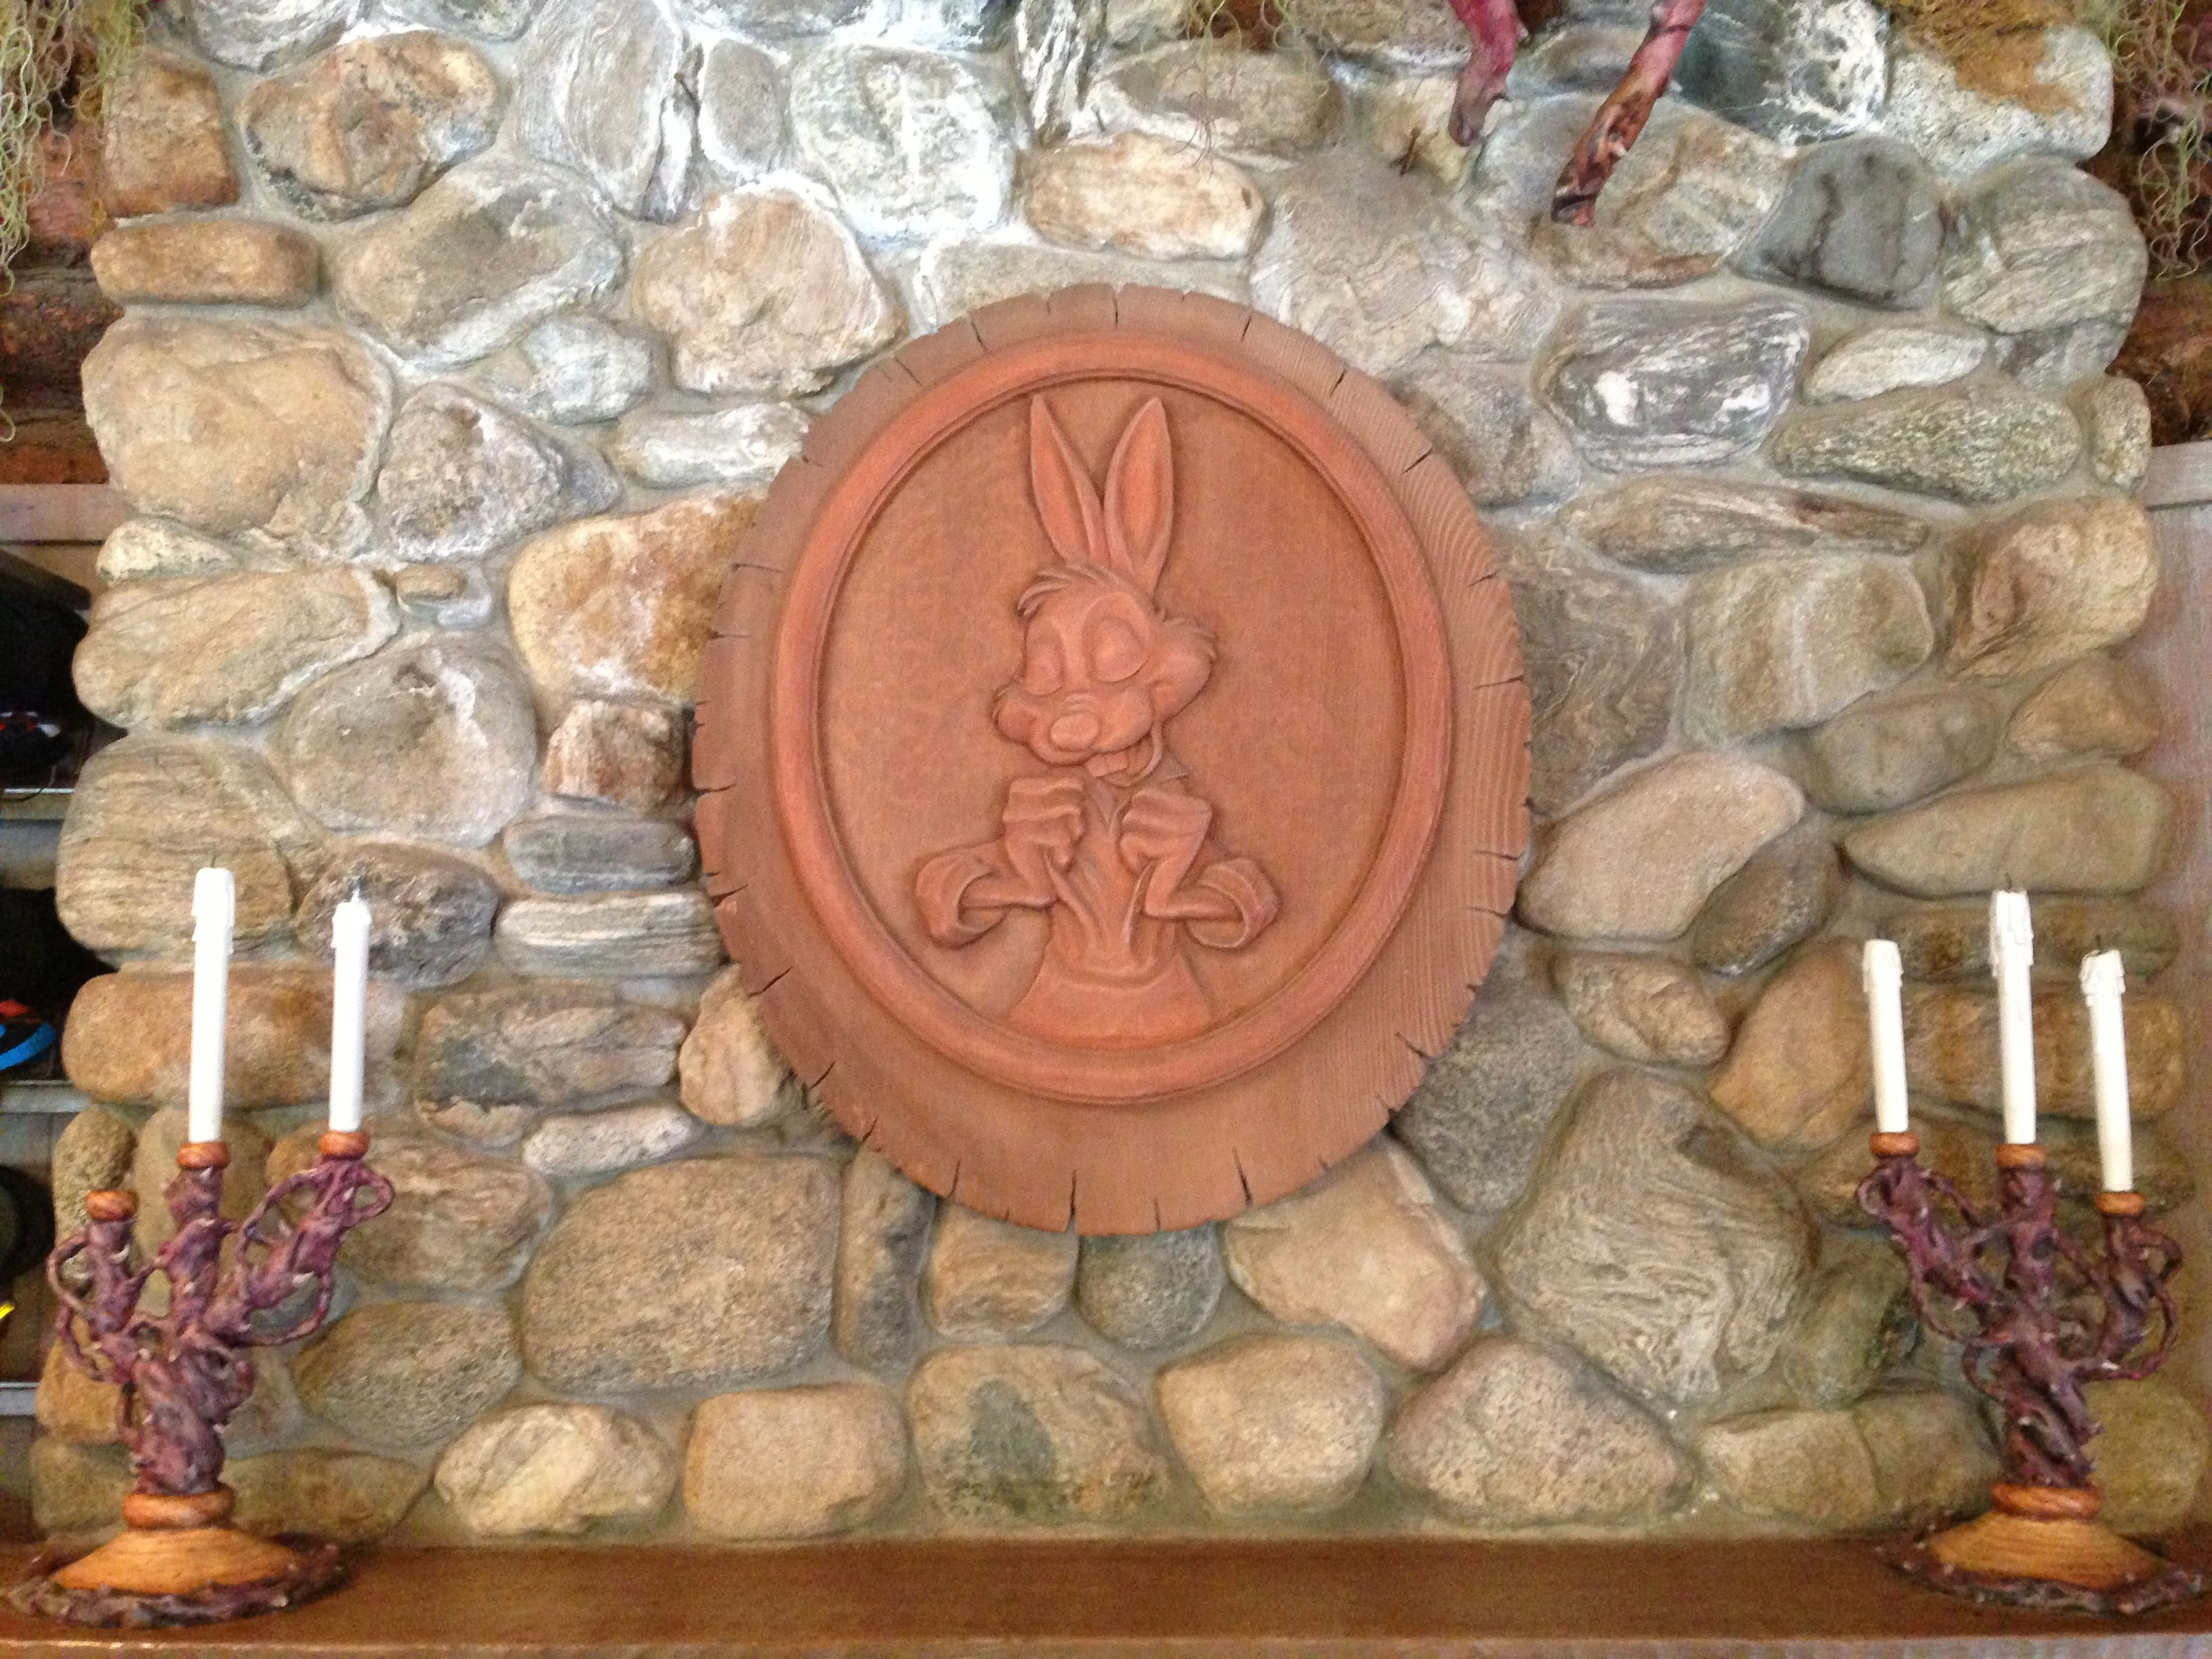 Vintage carnival ride www imgarcade com online image arcade - A Wood Carving Of Brer Rabbit At The Briar Patch Located By Splash Mountain In Disneyland